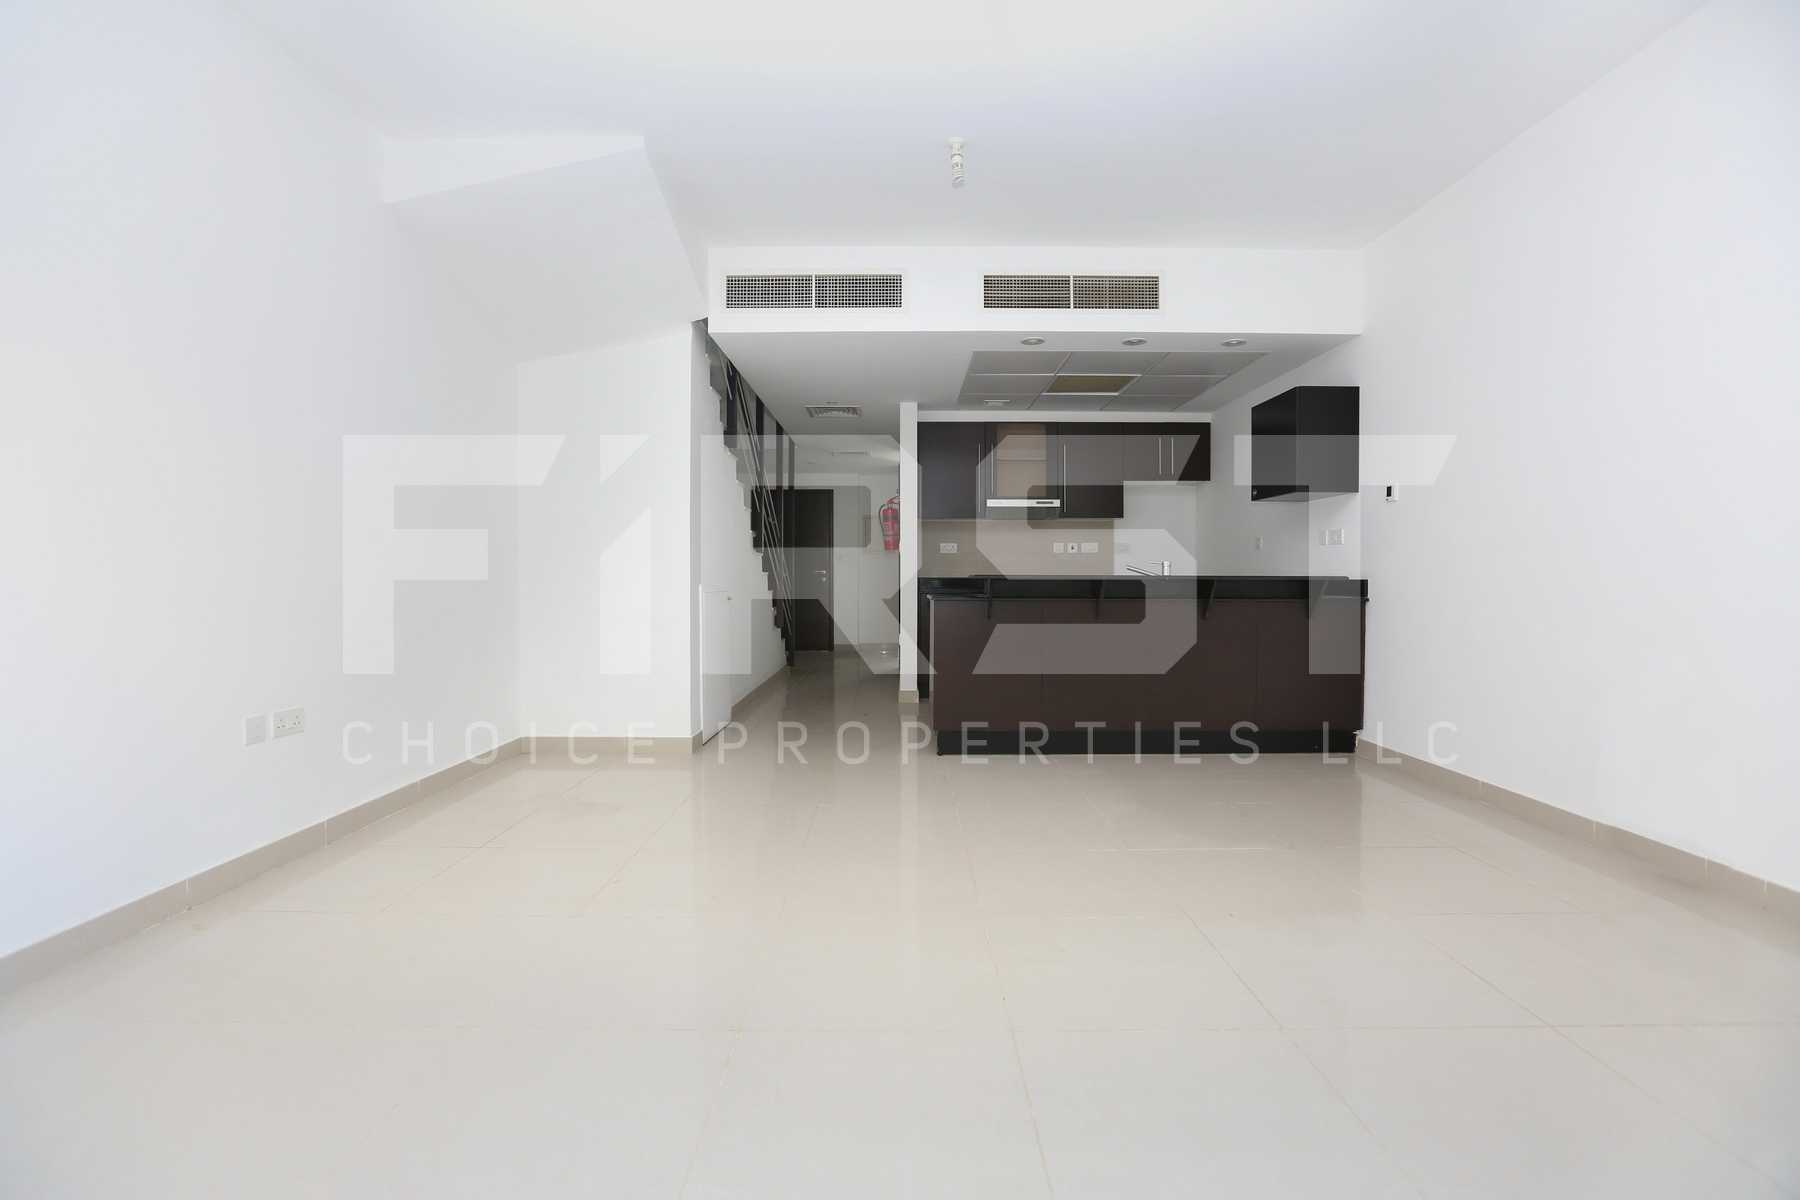 2 Bedroom Villa in Al Reef Villas  Al Reef Abu Dhabi UAE 170.2 sq.m 1832 sq.ft (7).jpg